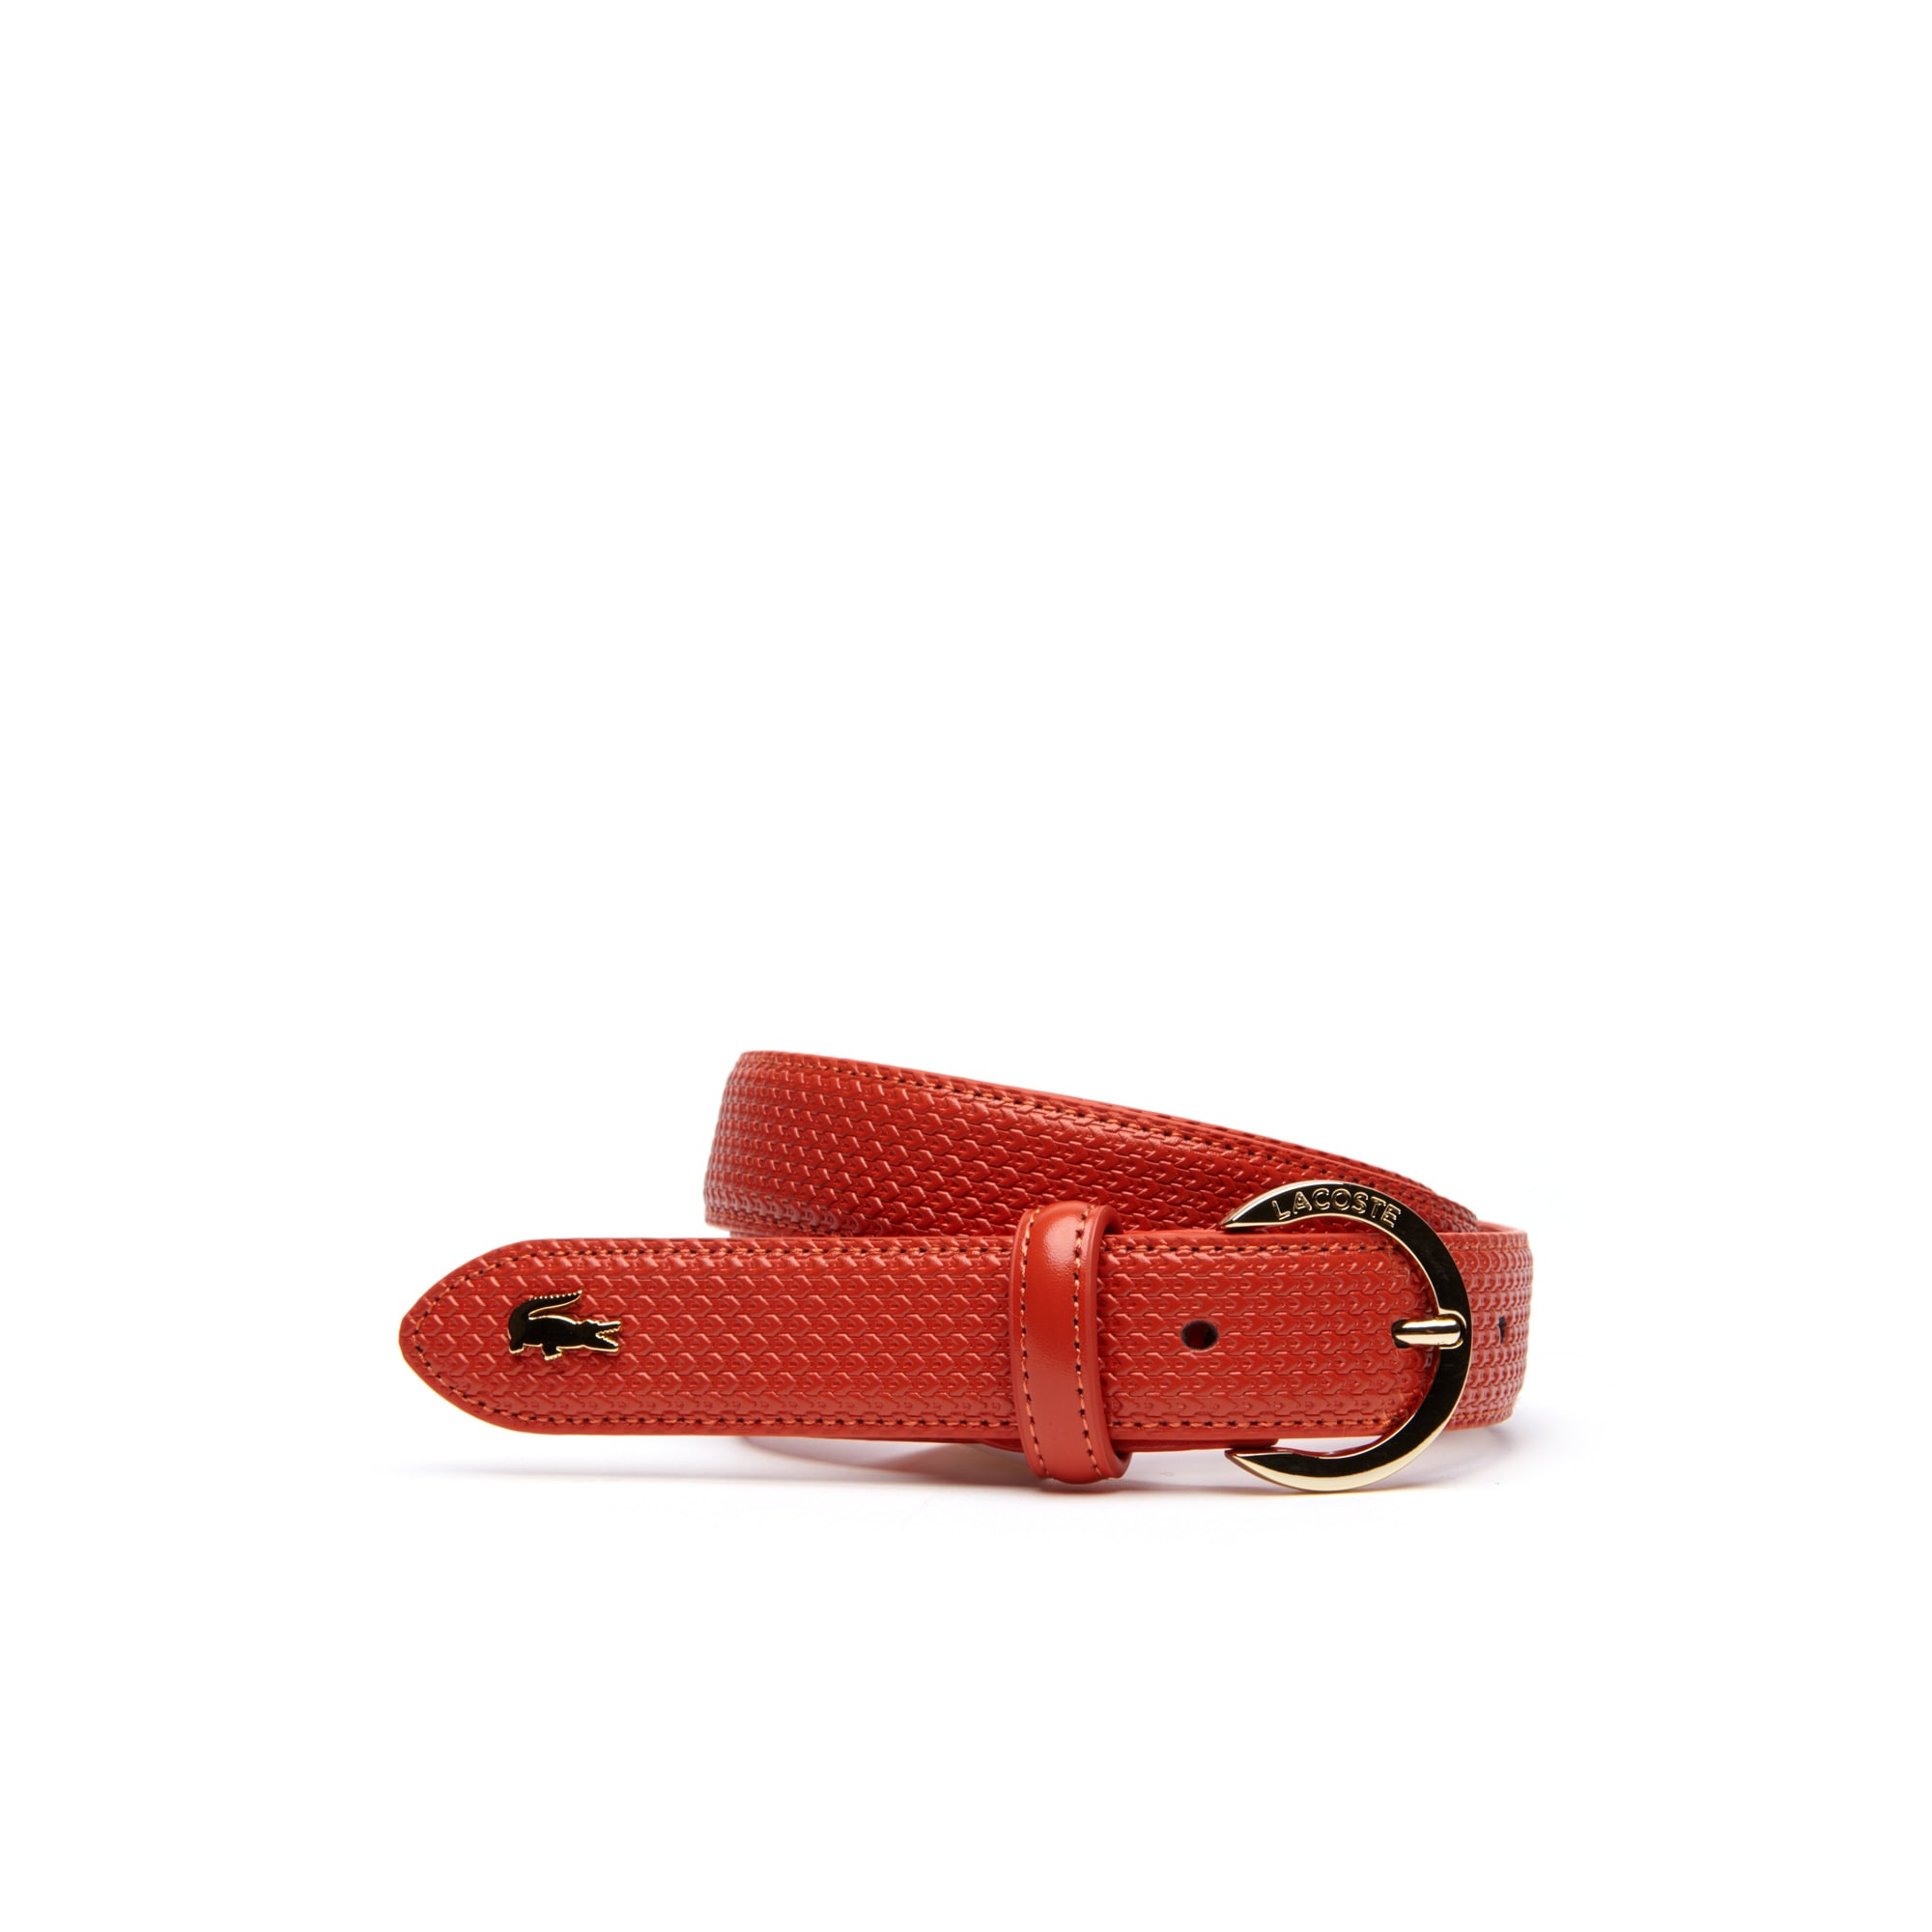 Women's Chantaco Lacoste Engraved Round Buckle Leather Belt